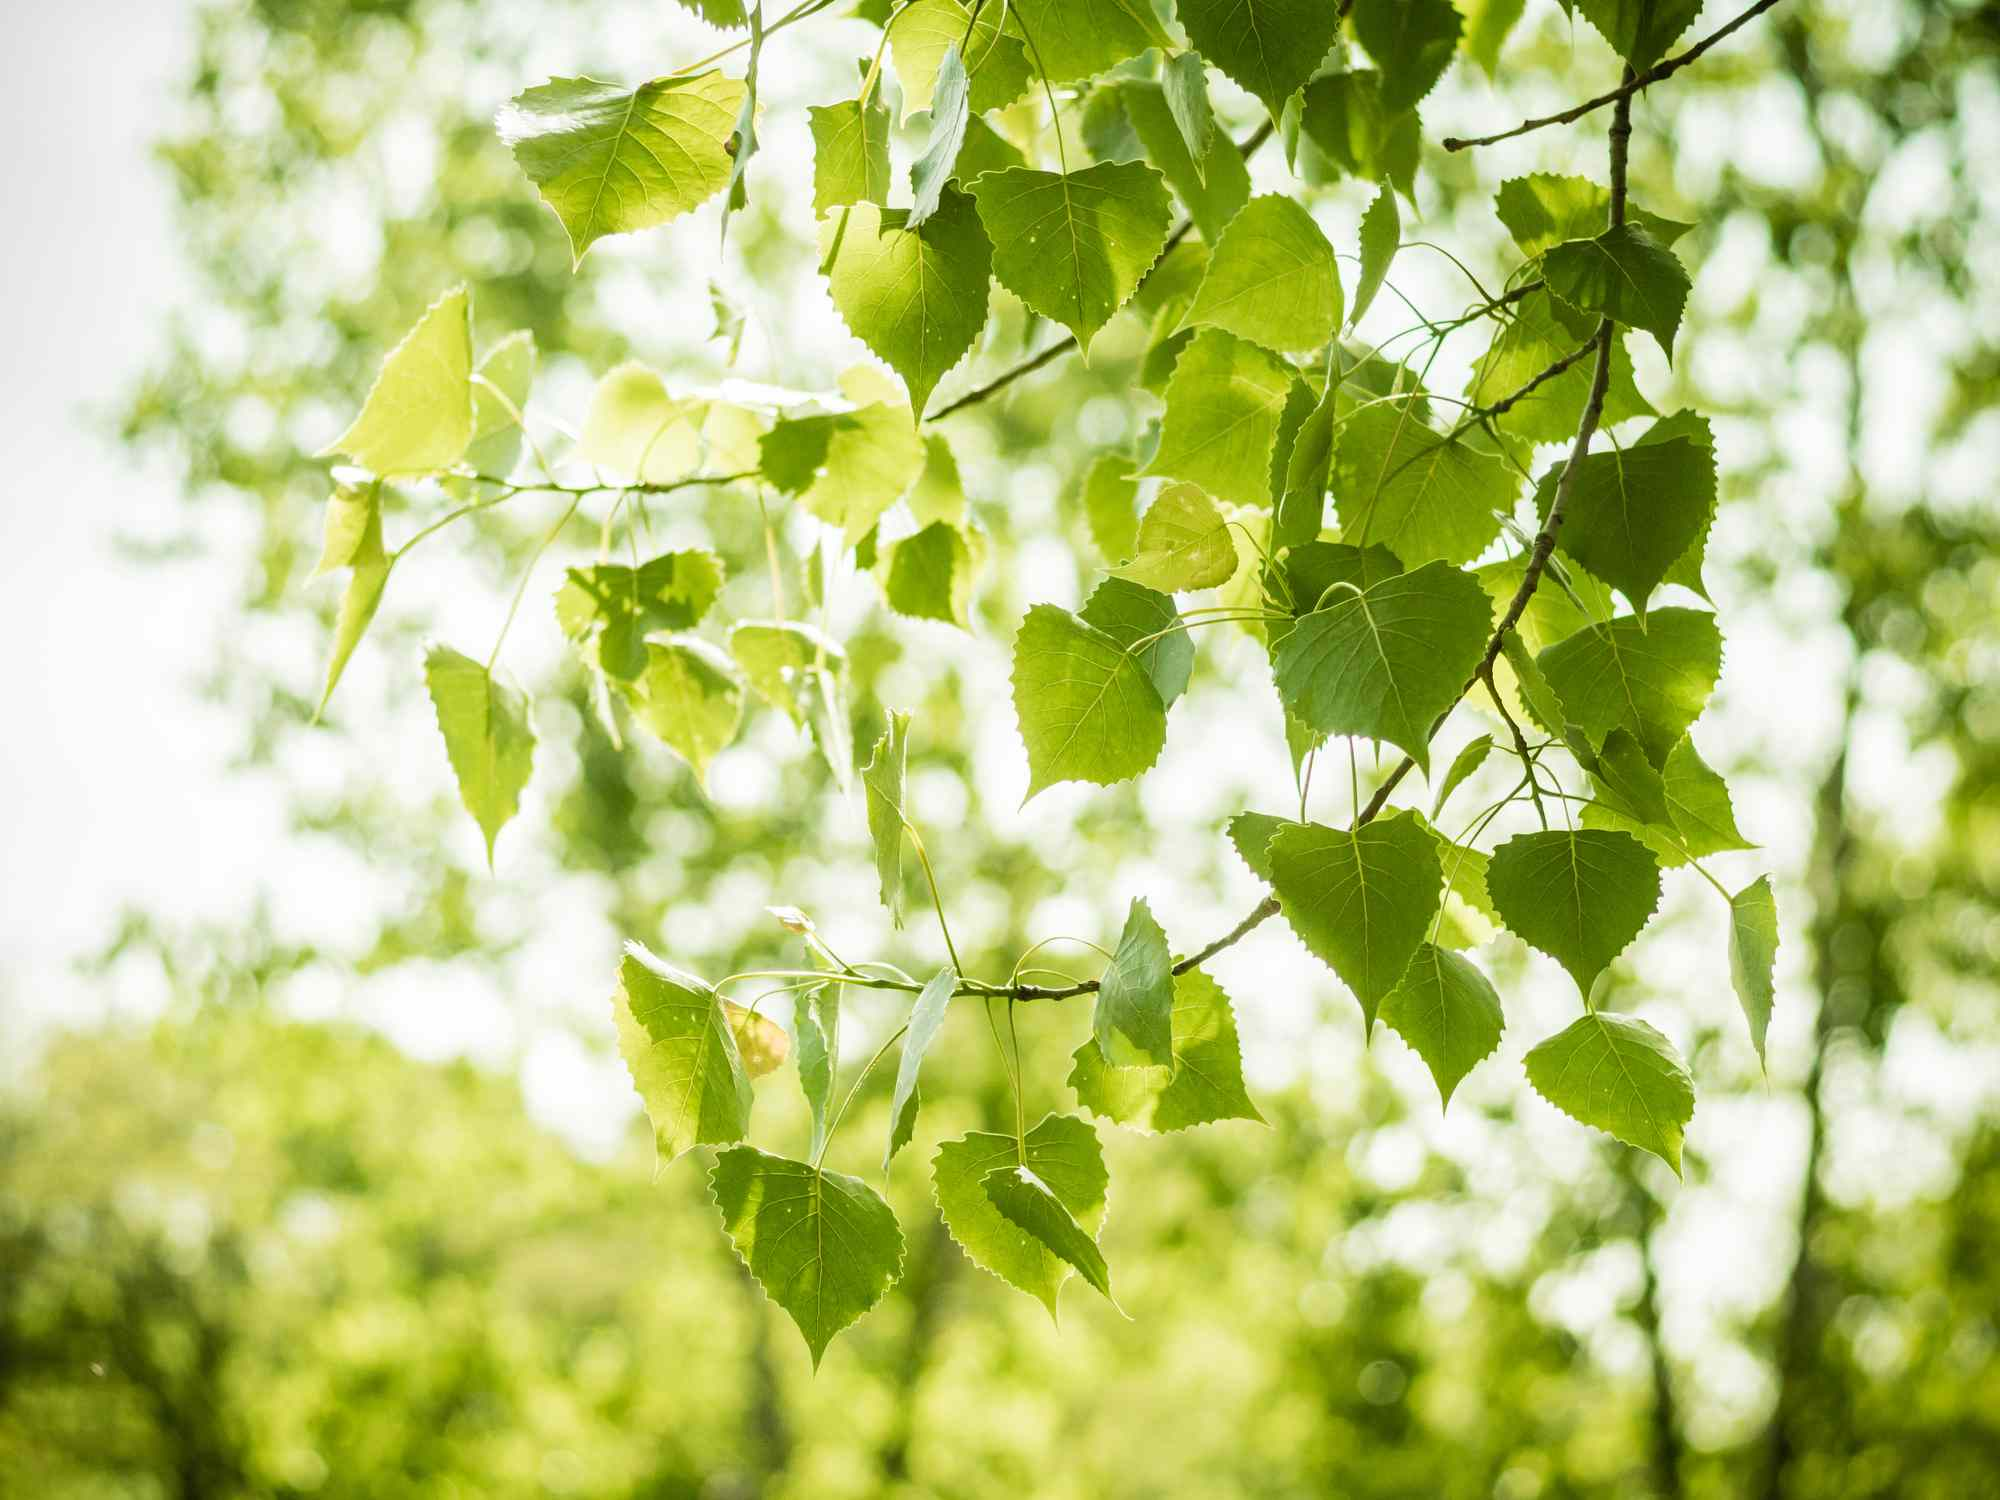 Leaves of the Big-Tooth Poplar